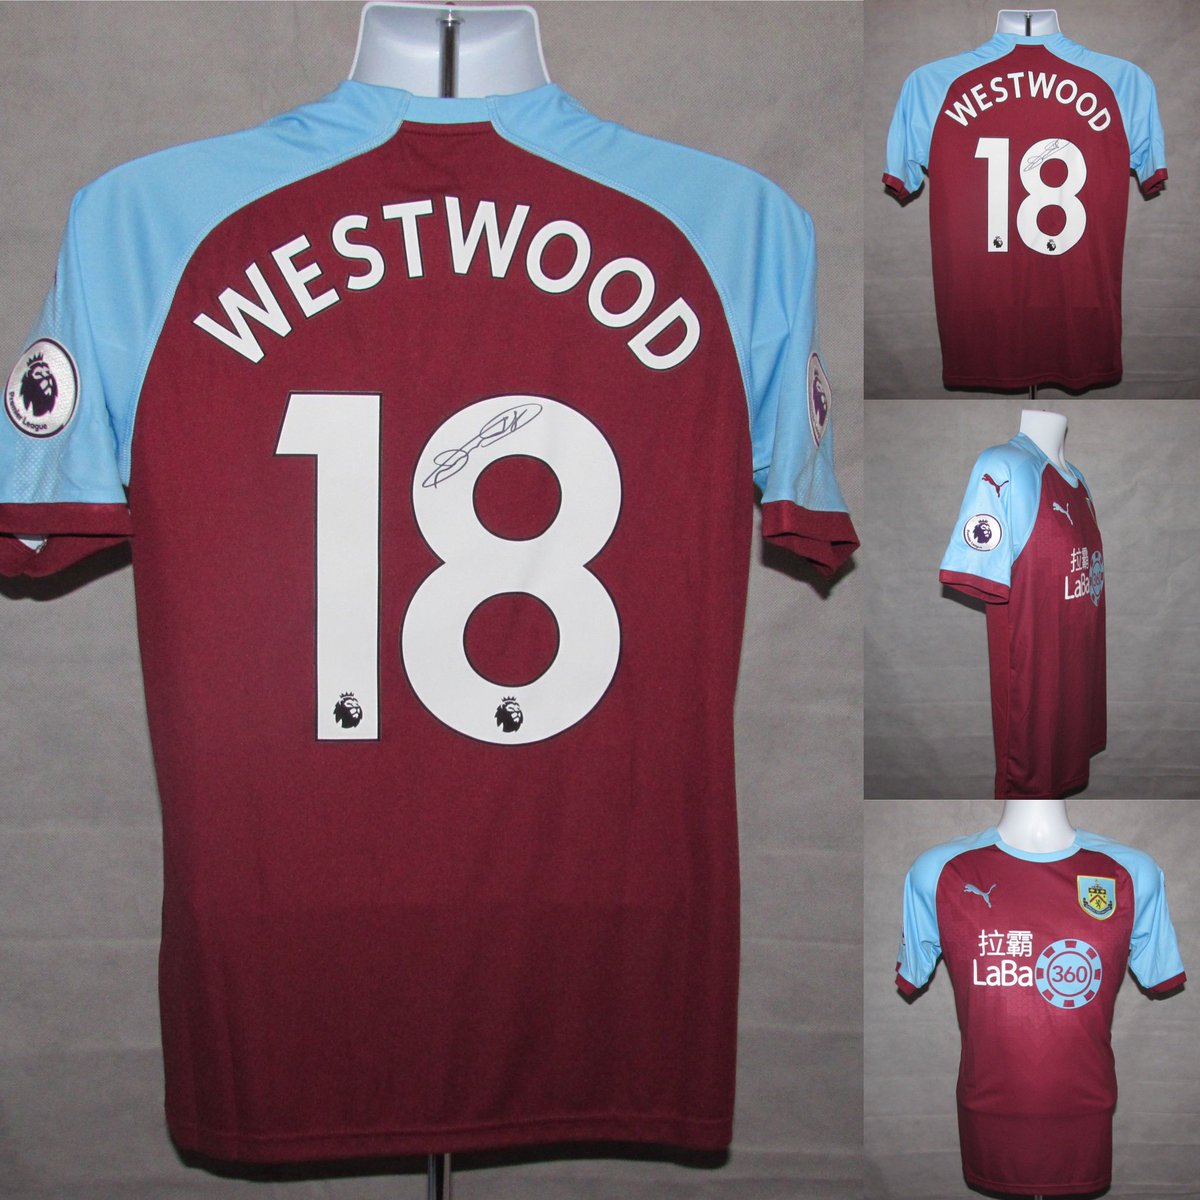 #FootballMemorabilia available at https://www.footballshirtwarehouse.com/2018-2019--burnley-fc-home-football-shirt-signed-by-ashley-westwood-18-bnwt-2-573-p.asp …  #BurnleyFC #burful #ashleywestwood signed #clarets shirt #epl. #premierleague